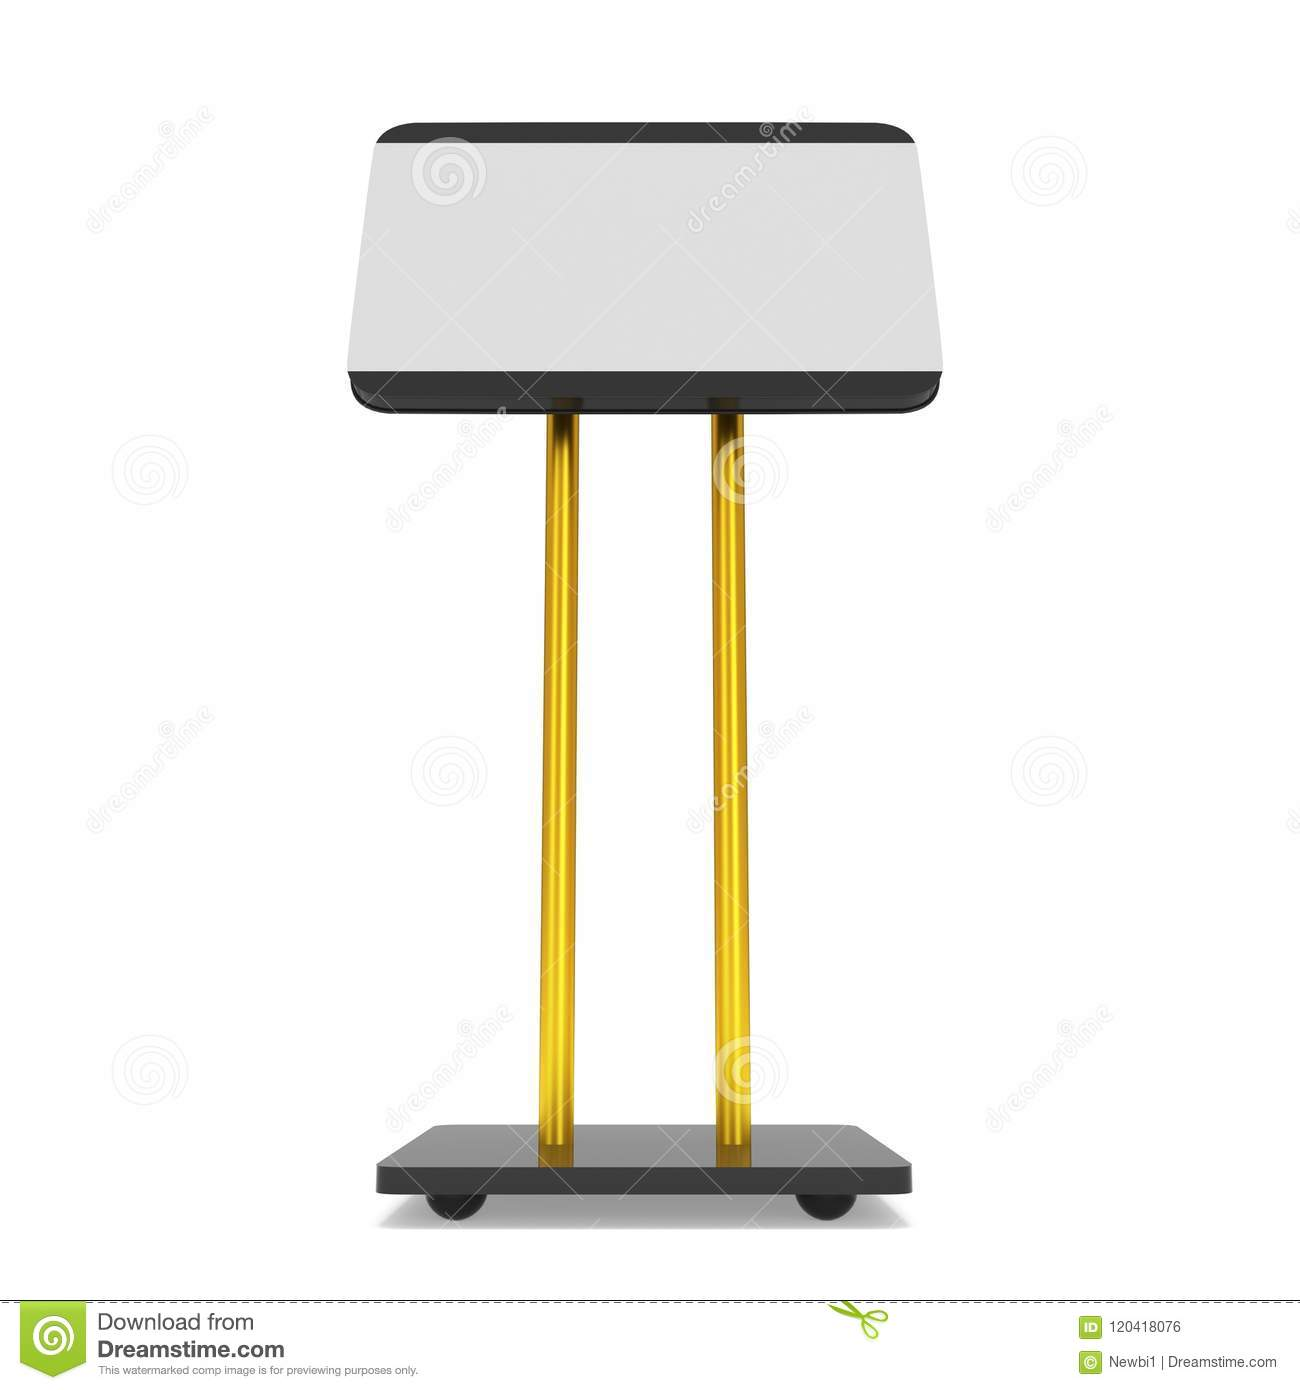 Trade Show Booth Lcd Screen Stand Stock Illustration Illustration Of Render Exhibitor 120418076